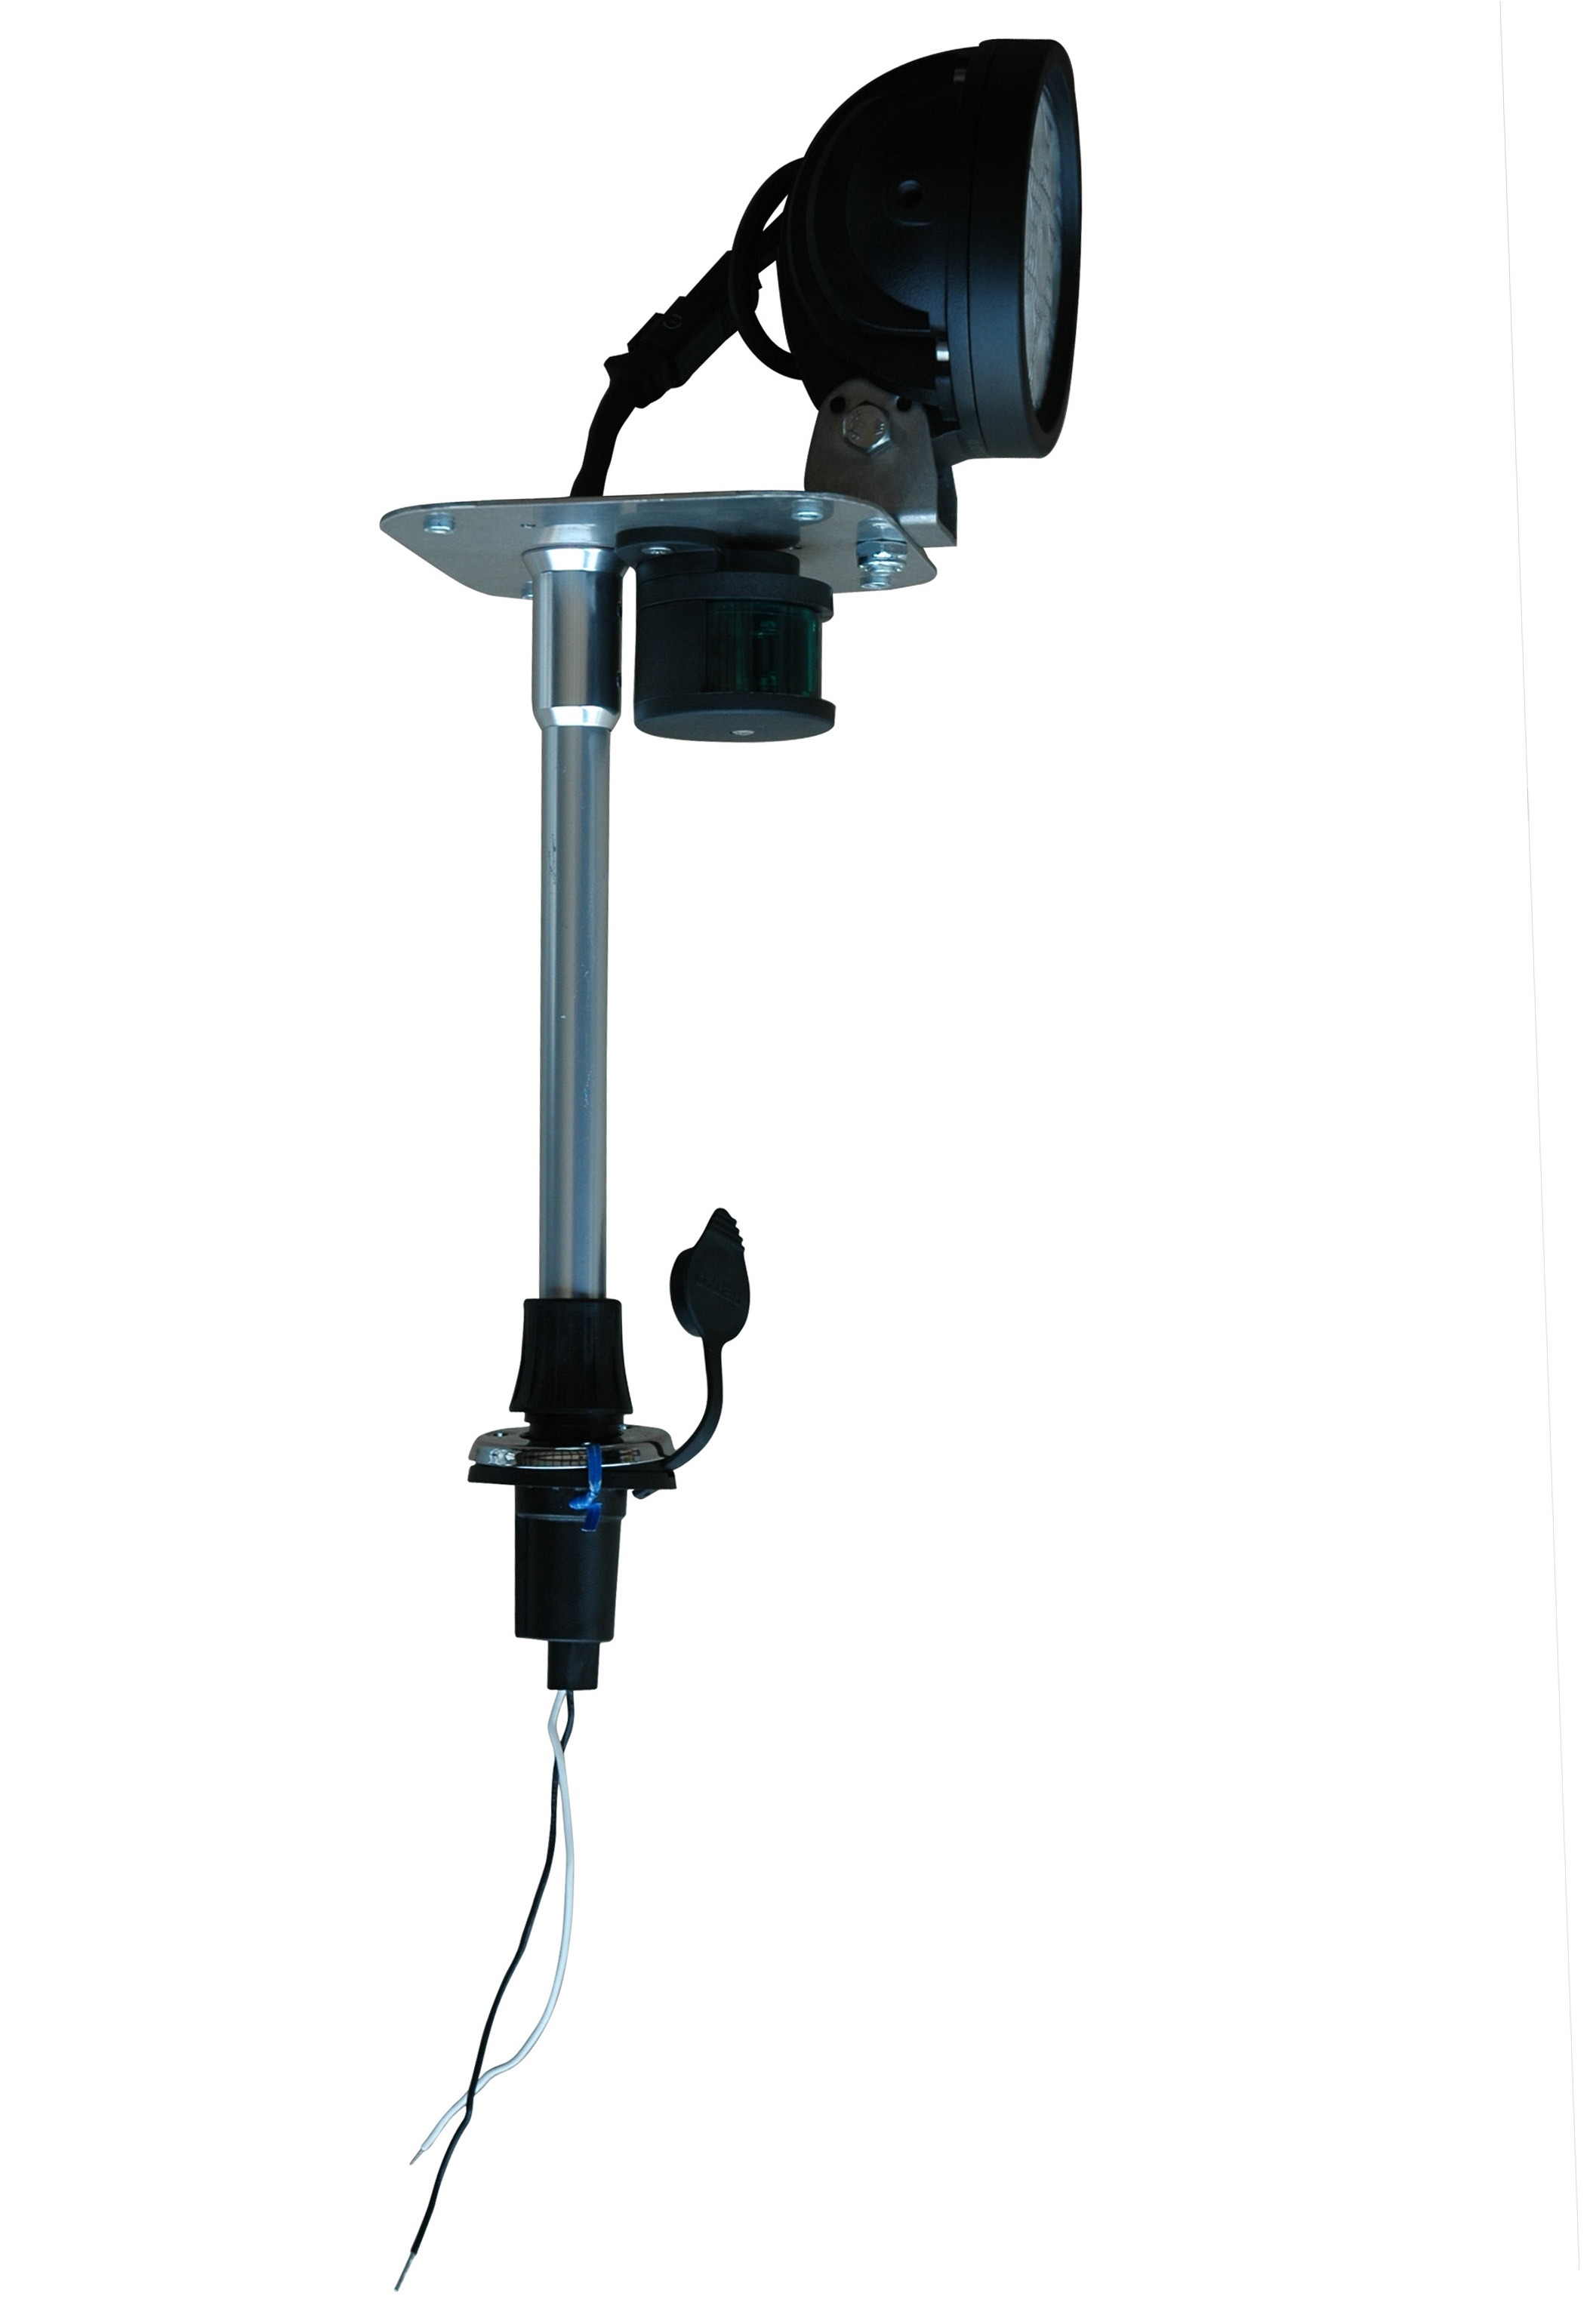 Magnalight Com Announces The Release Of A Perko Pole Mount